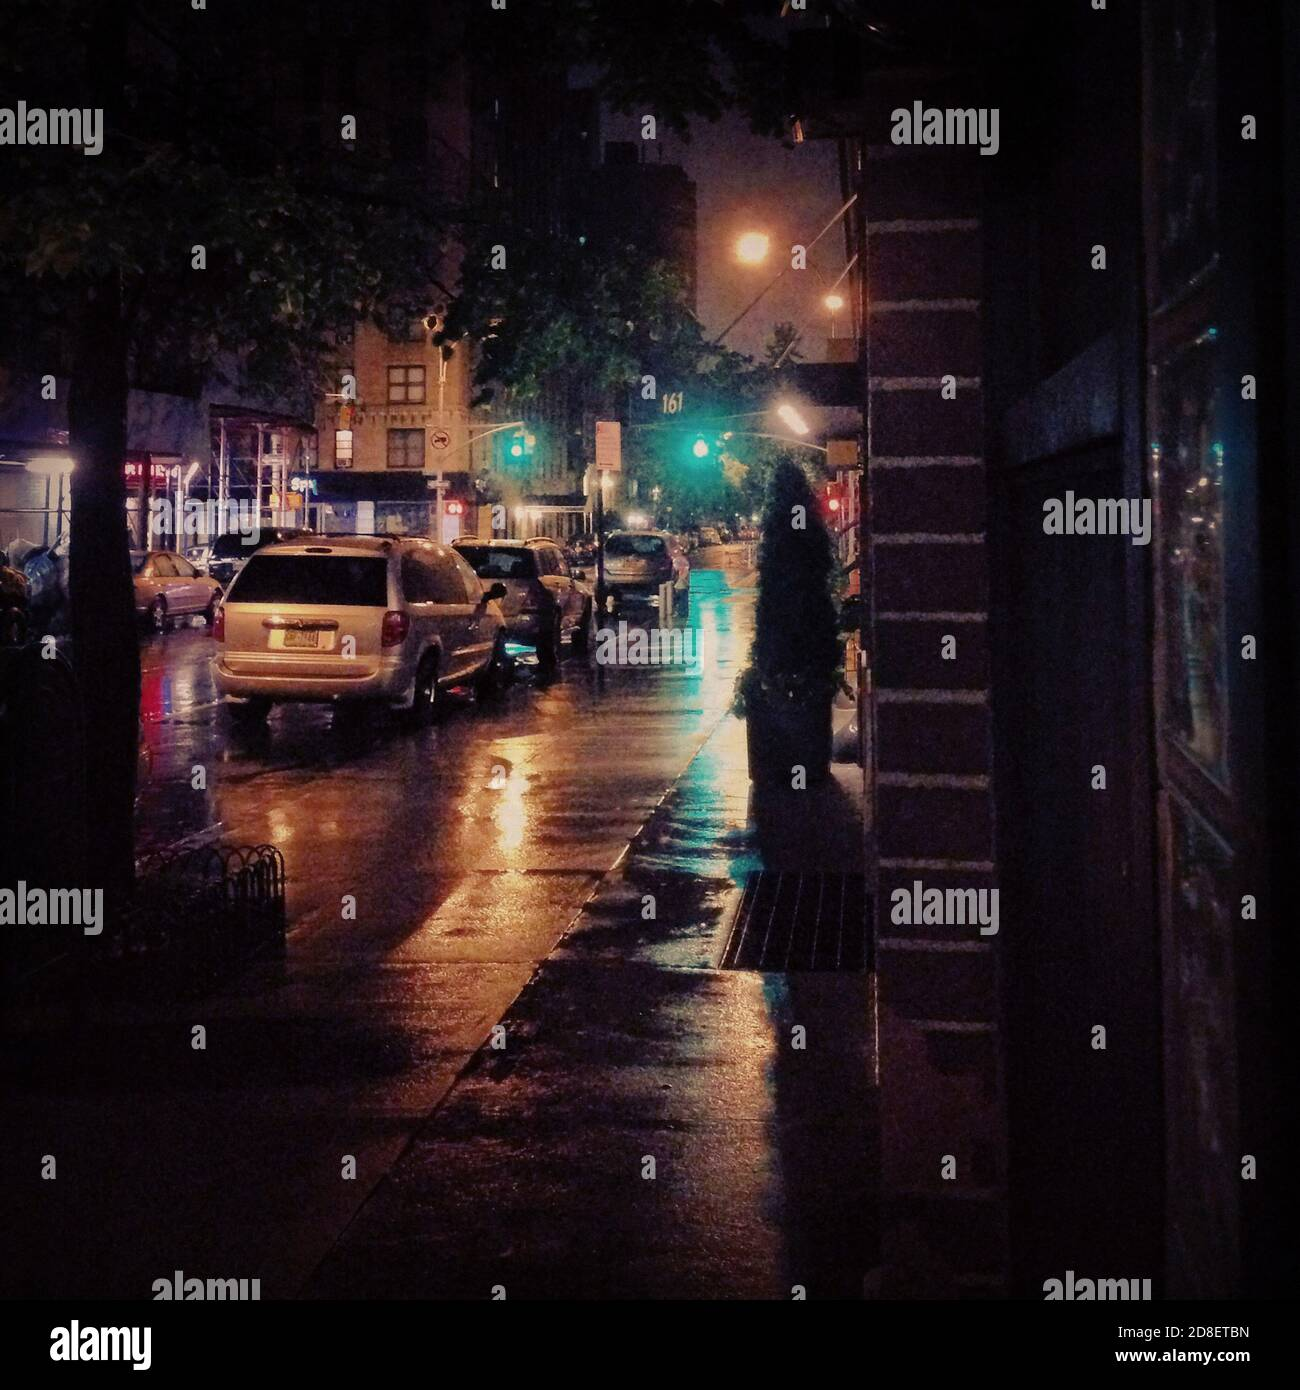 Rainy Street Scene at Night, New York City, New York, États-Unis Banque D'Images